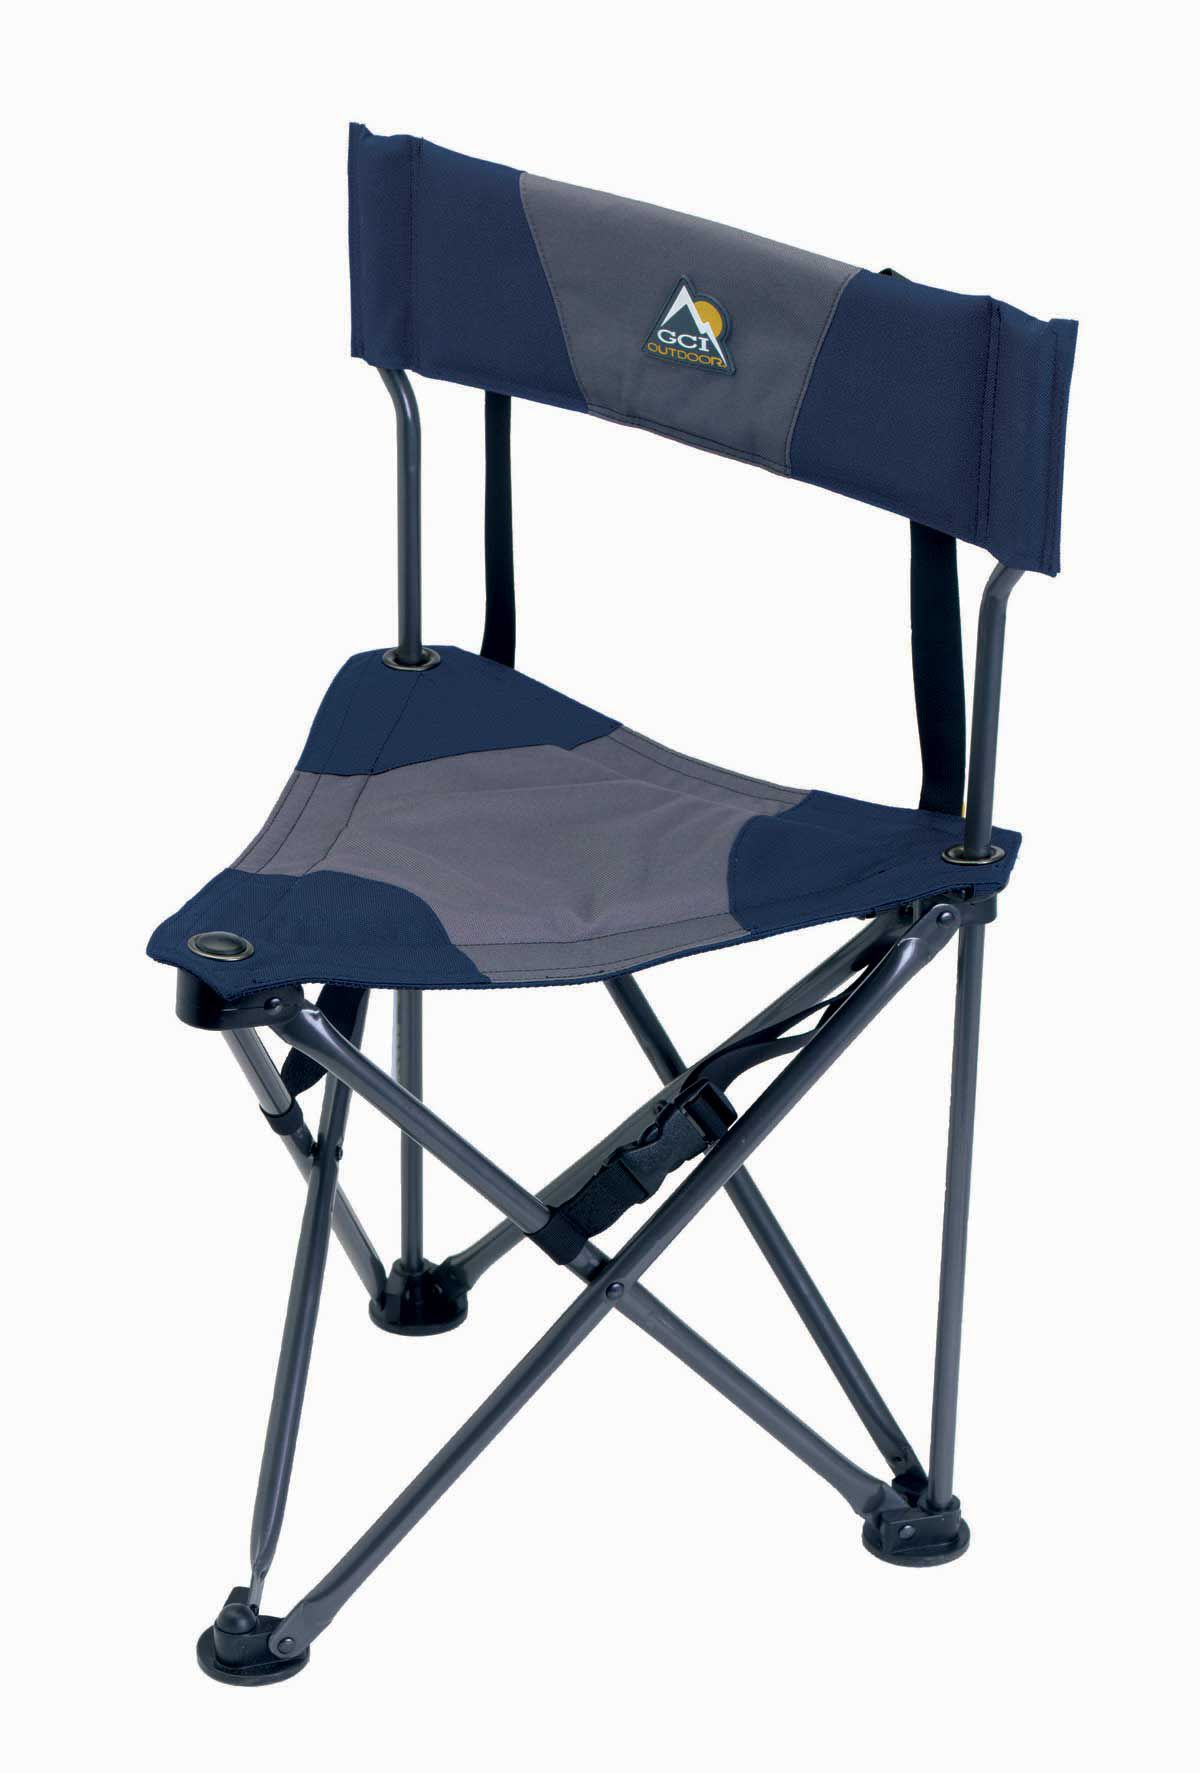 folding chairs outdoor use rolling stool chair gci quik e seat dick s sporting goods 1